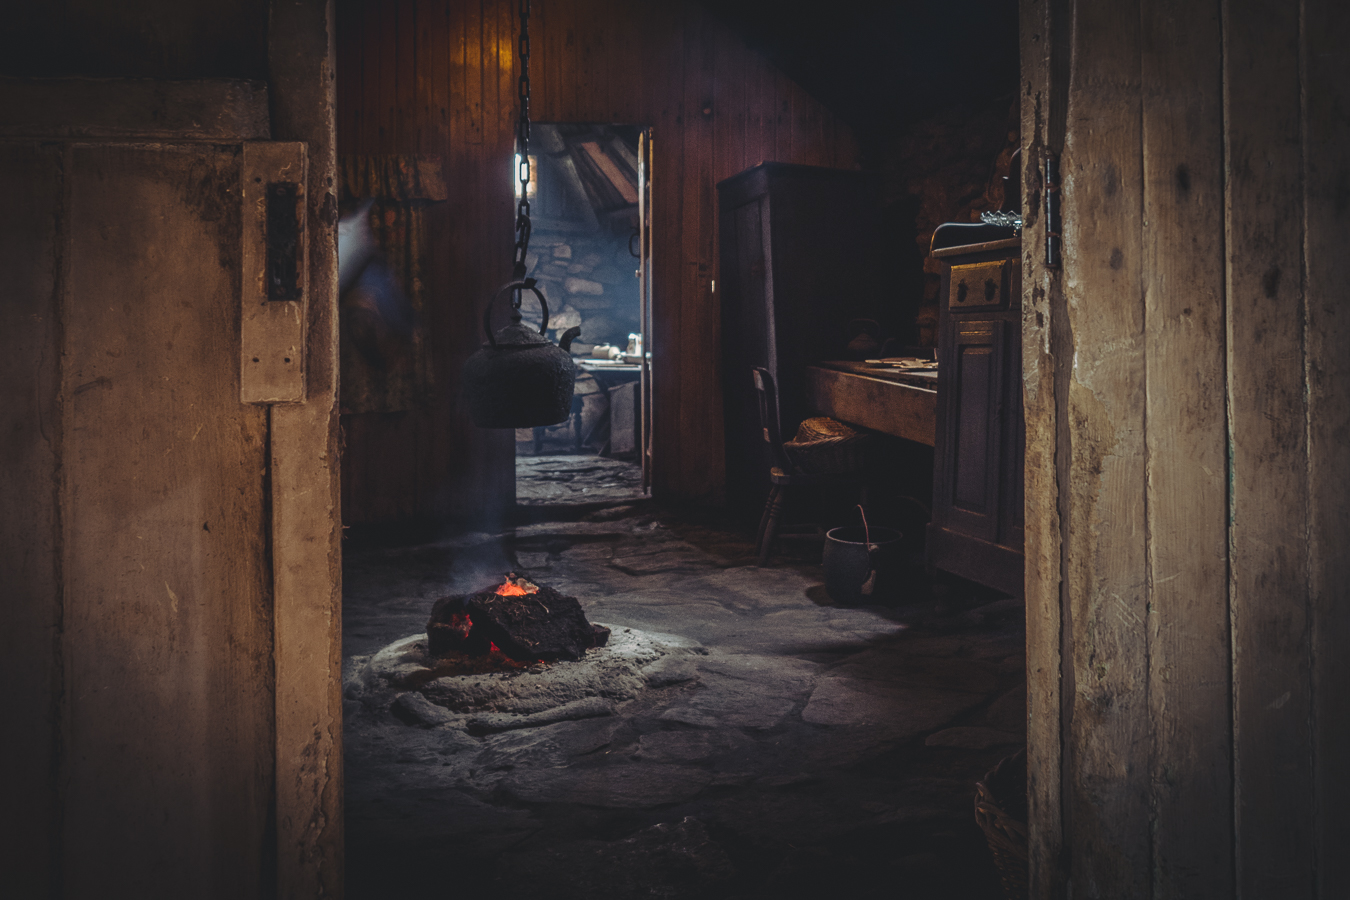 black house, Arnol, photography, image, peat fire,